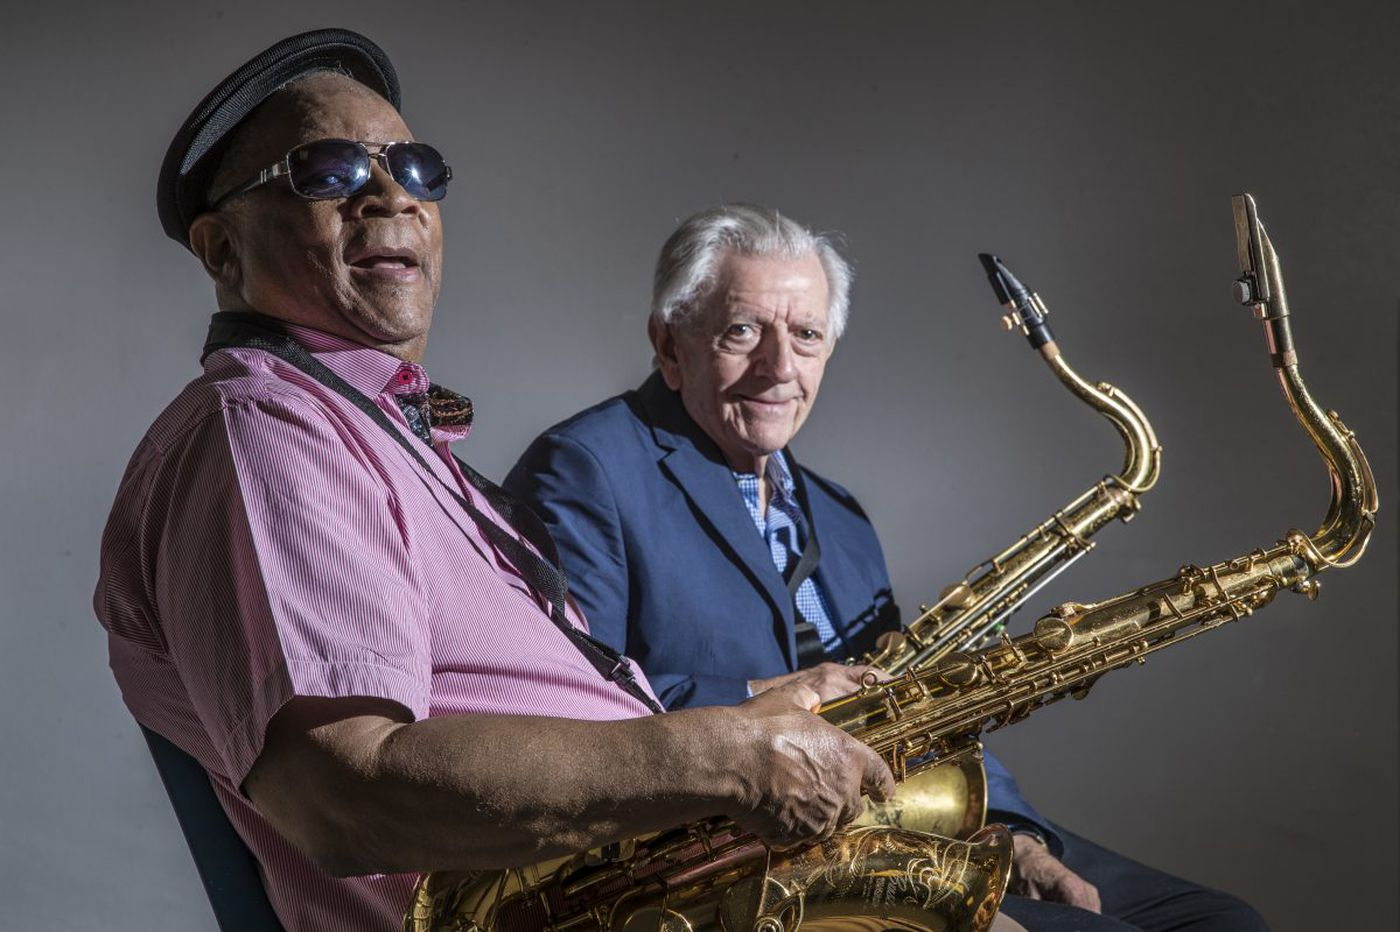 Two Philly jazz masters celebrate their 80th birthdays (and their best-friendship)